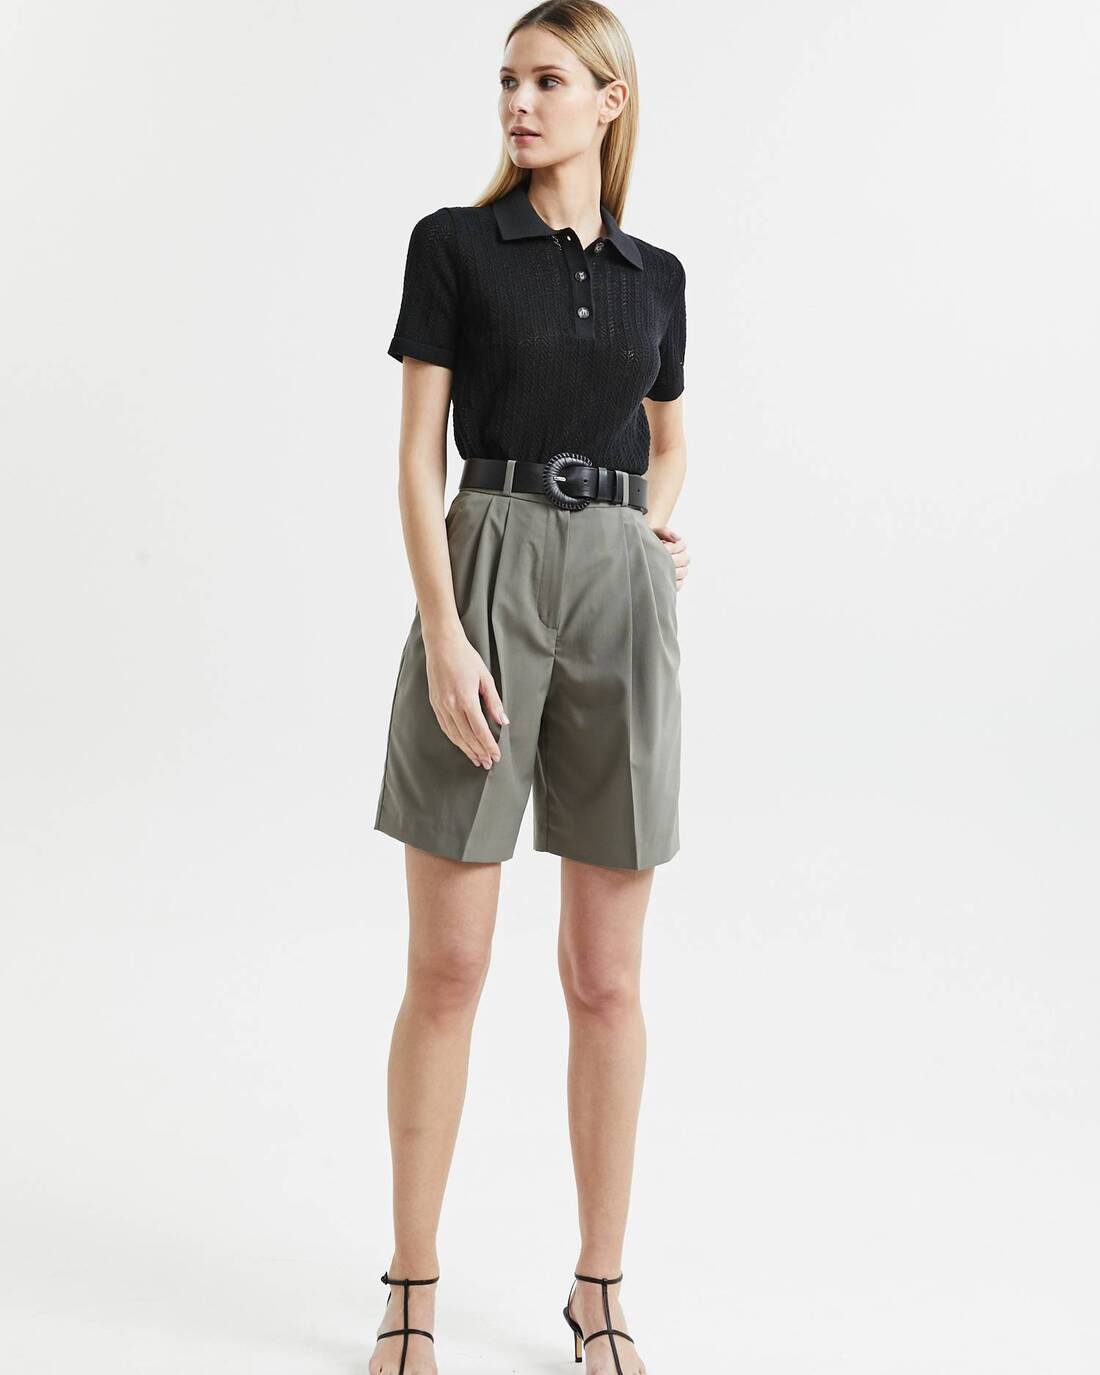 High-waisted wide-legged shorts